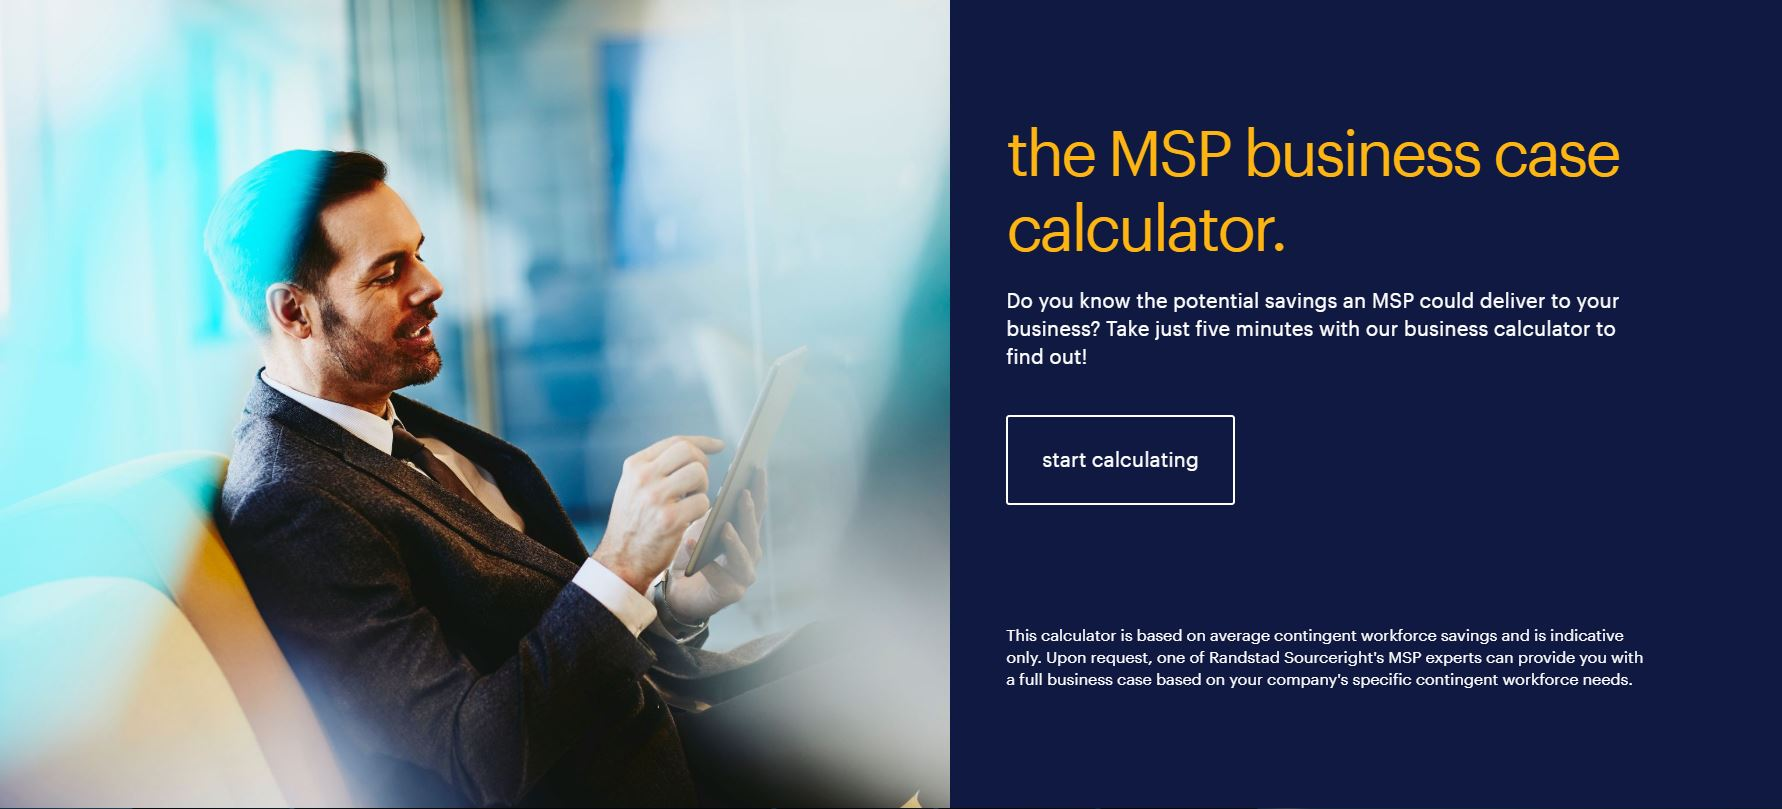 calculate your savings with MSP